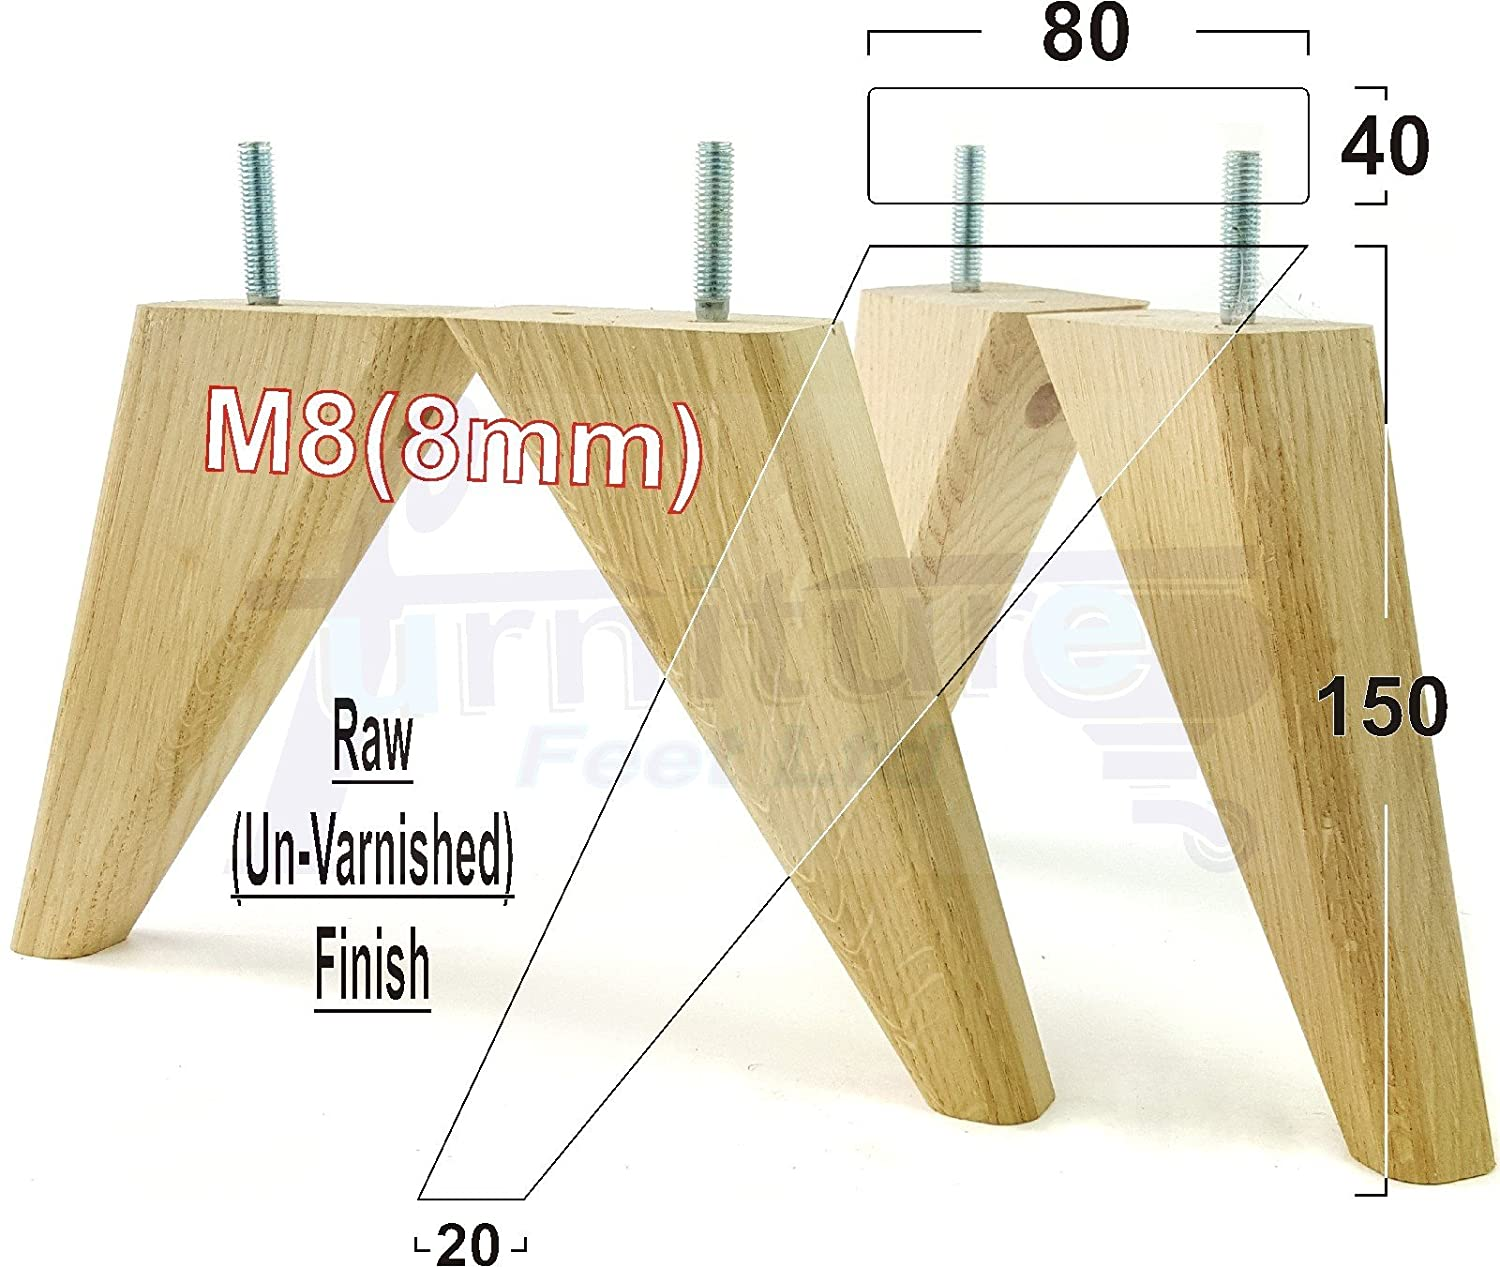 4x solid wood replacement angled feet 150mm high furniture legs for sofas chairs settees stools m88mm tsp2057 raw amazon co uk diy tools